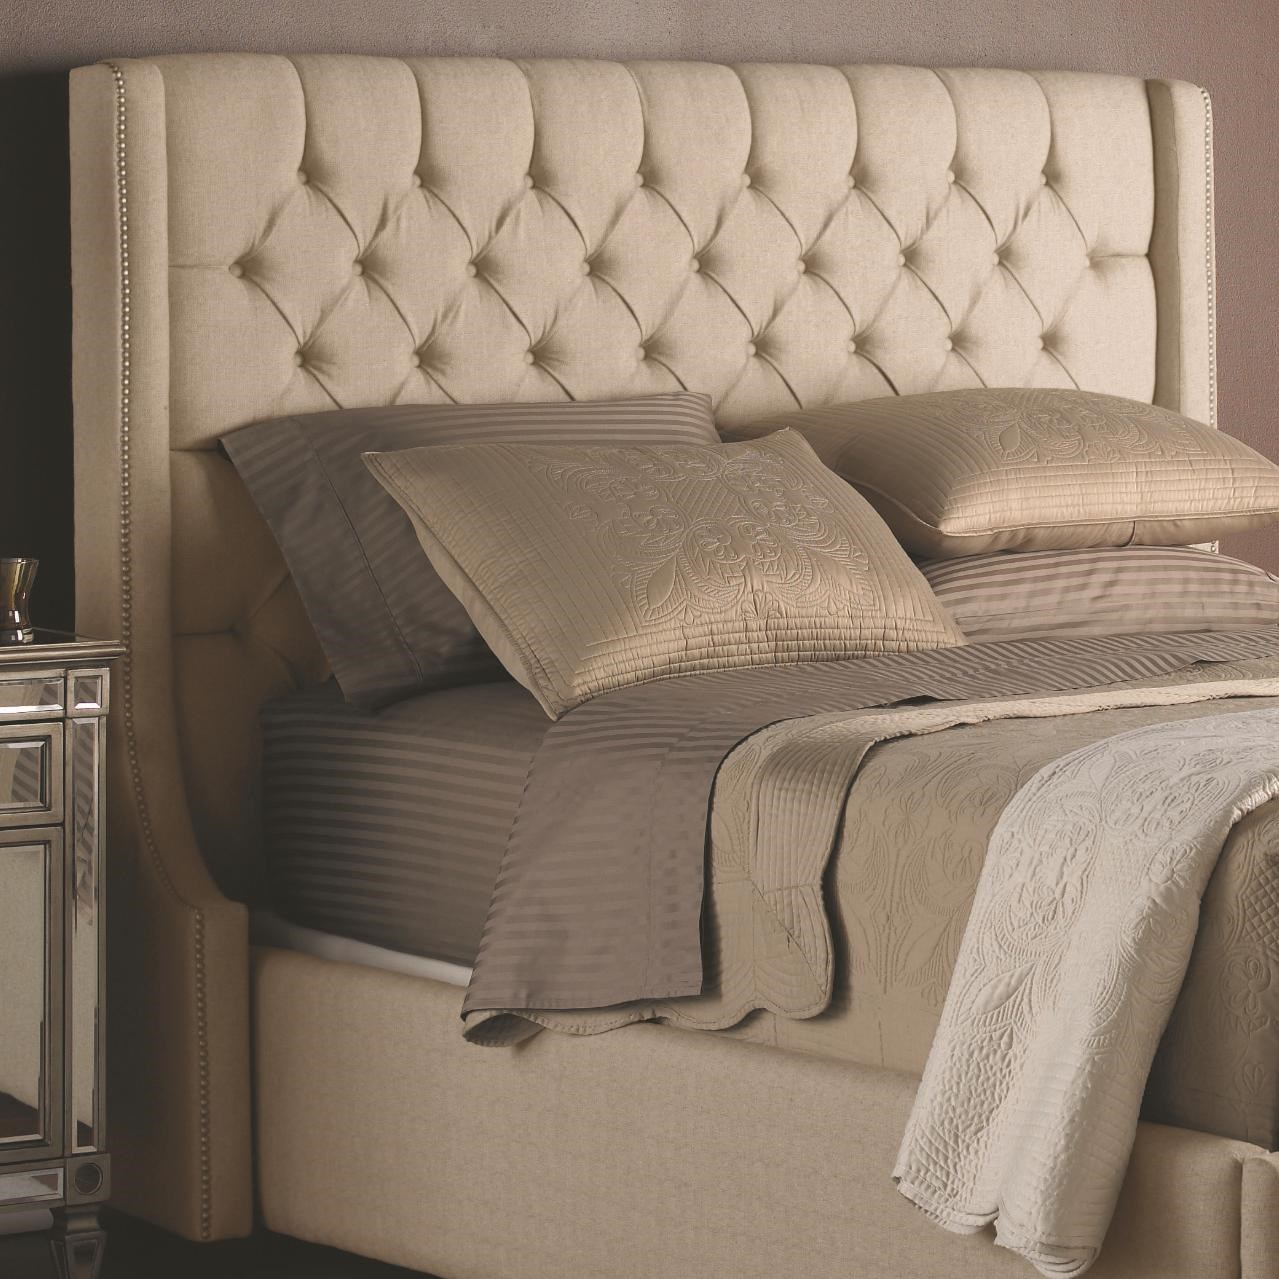 decorrest beds queen upholstered headboard with button tufting